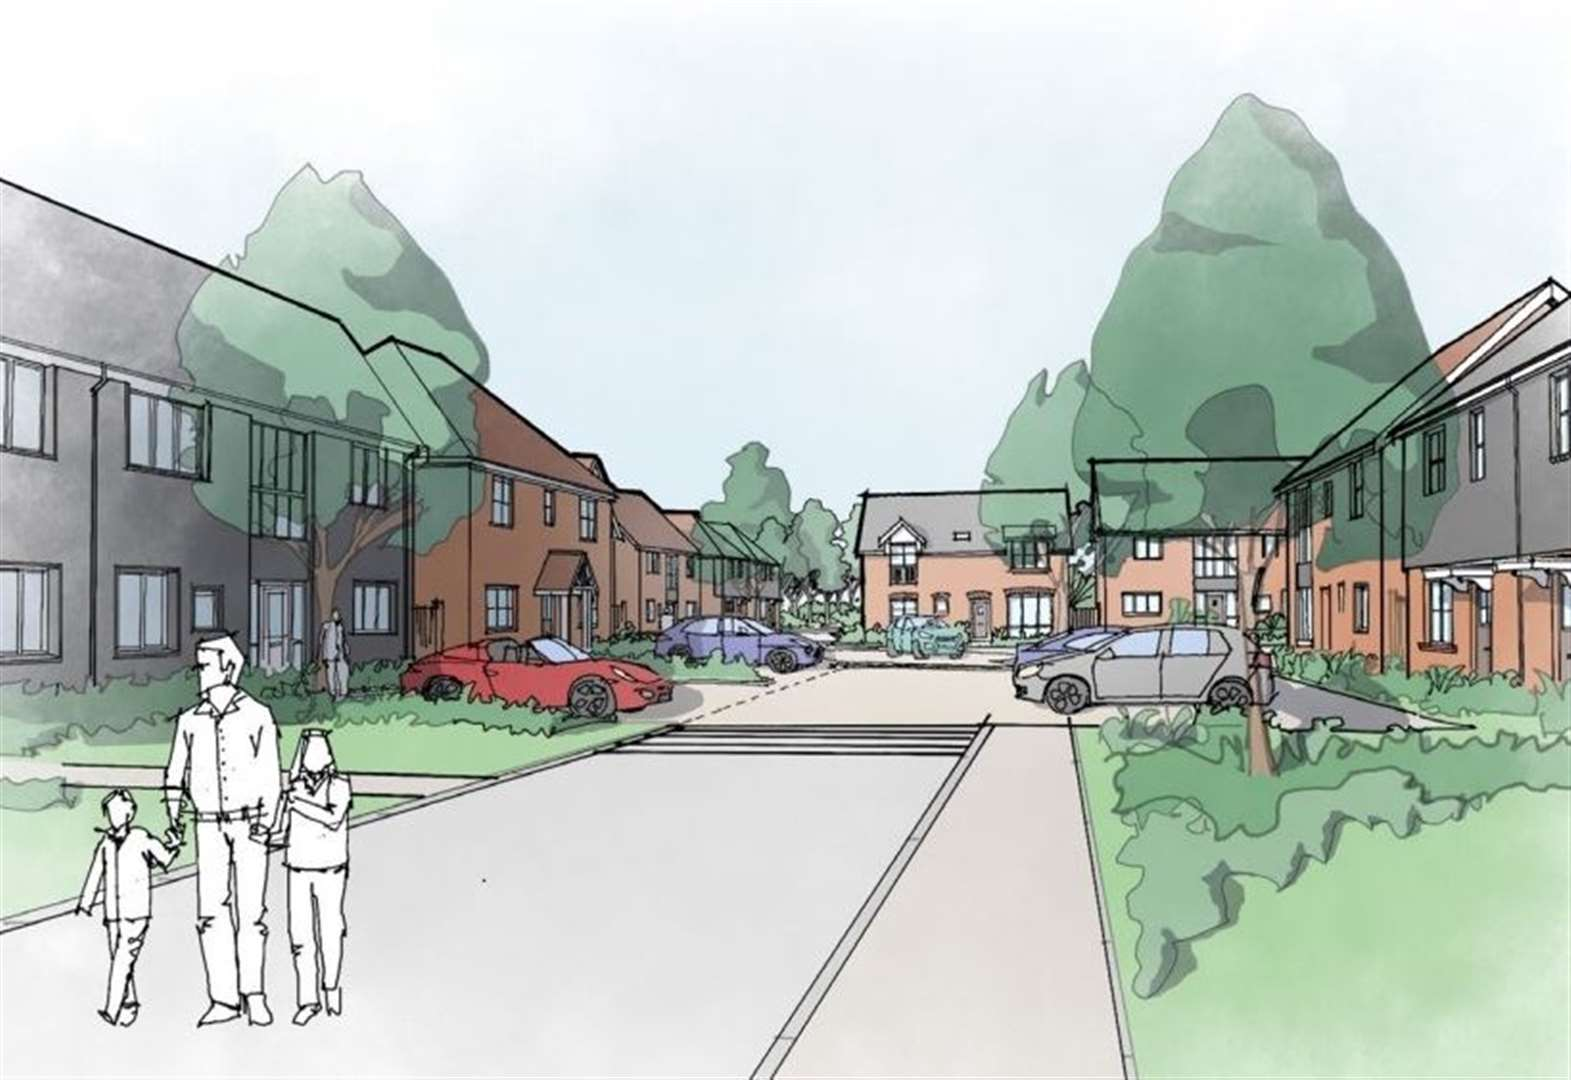 Builders poised to start on £230m estate